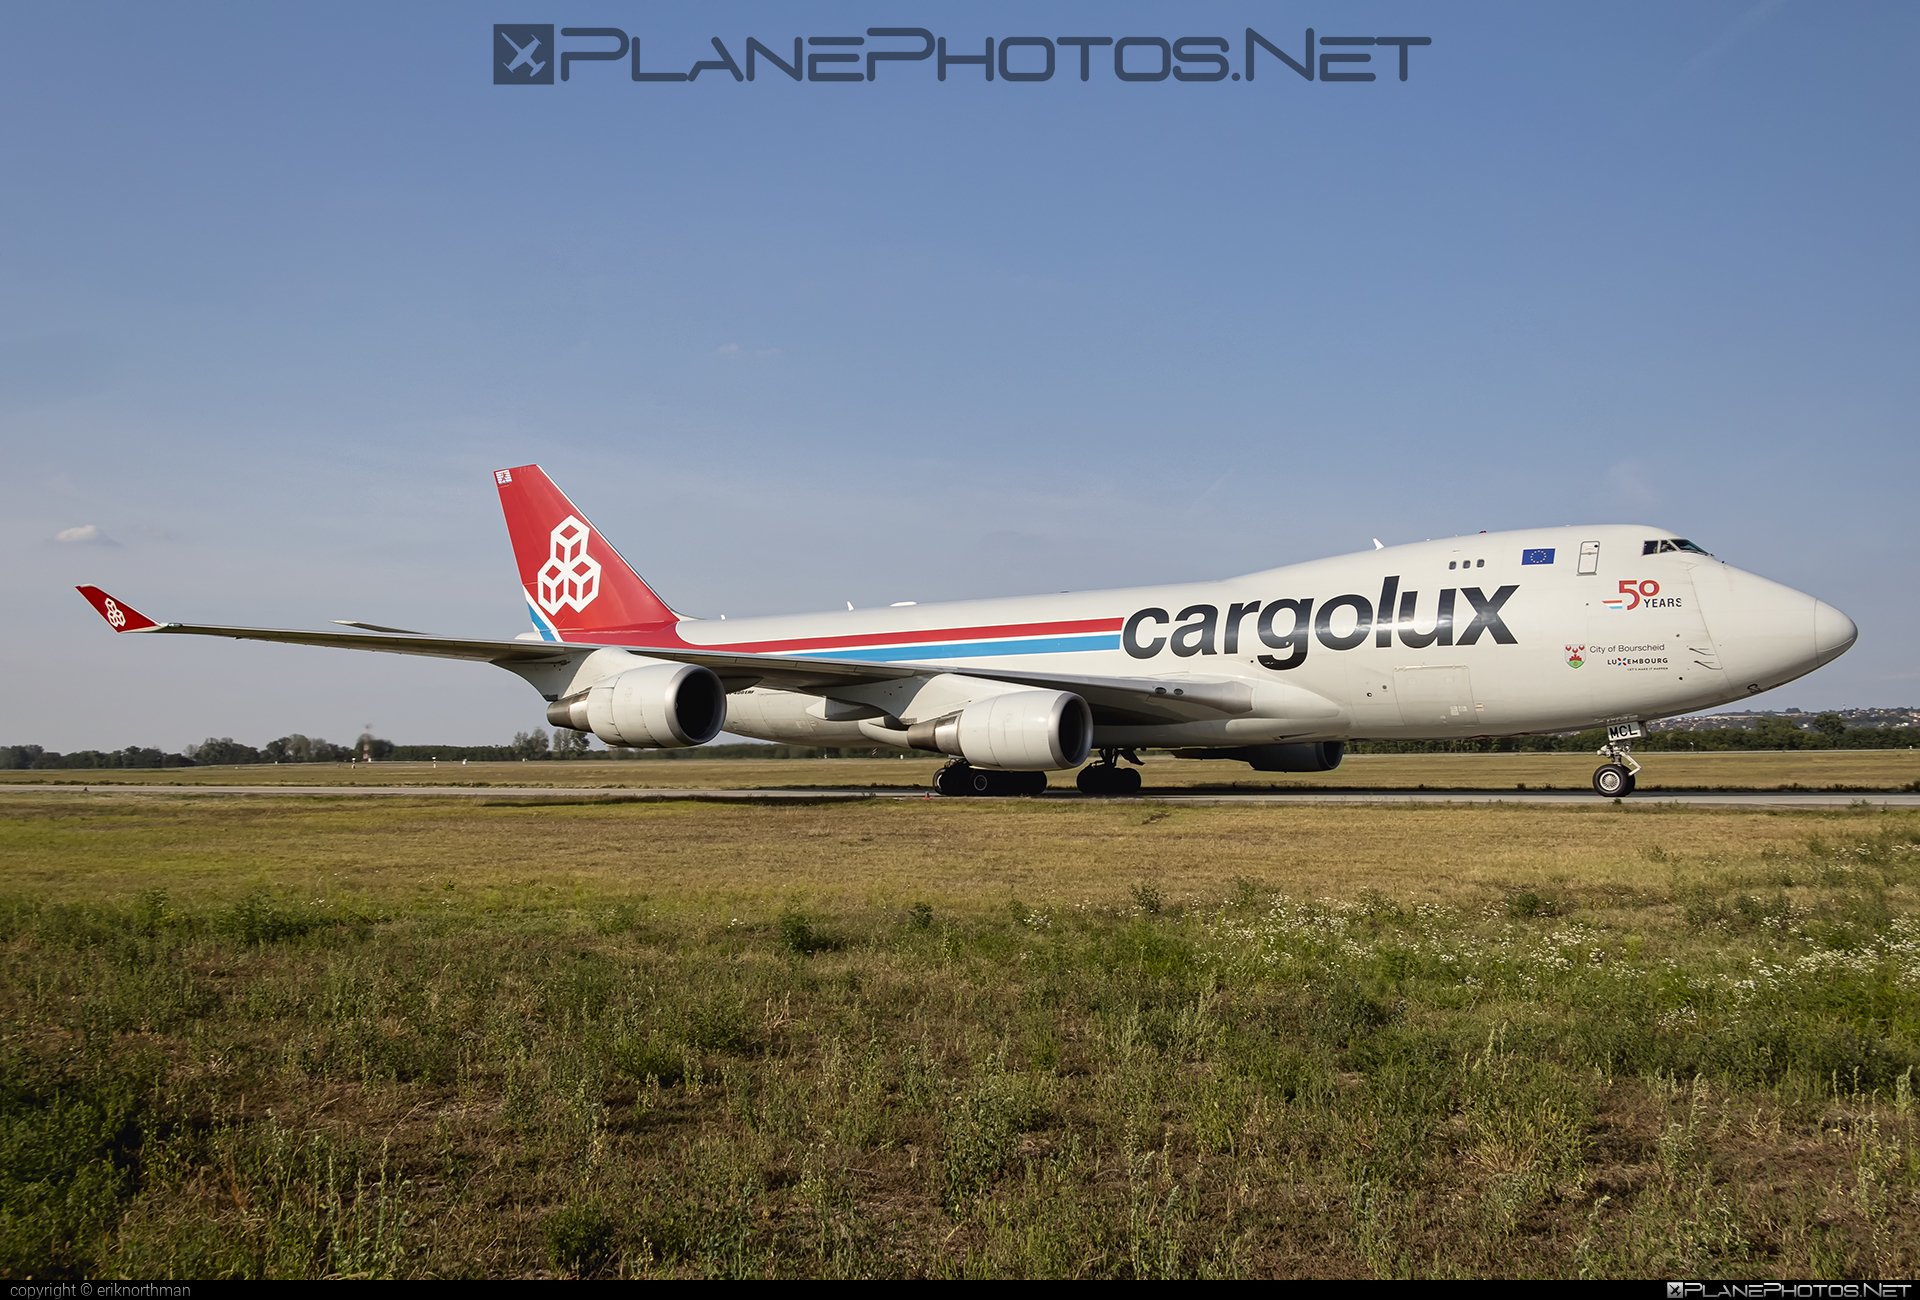 Boeing 747-400ERF - LX-MCL operated by Cargolux Airlines International #b747 #b747erf #b747freighter #boeing #boeing747 #cargolux #jumbo